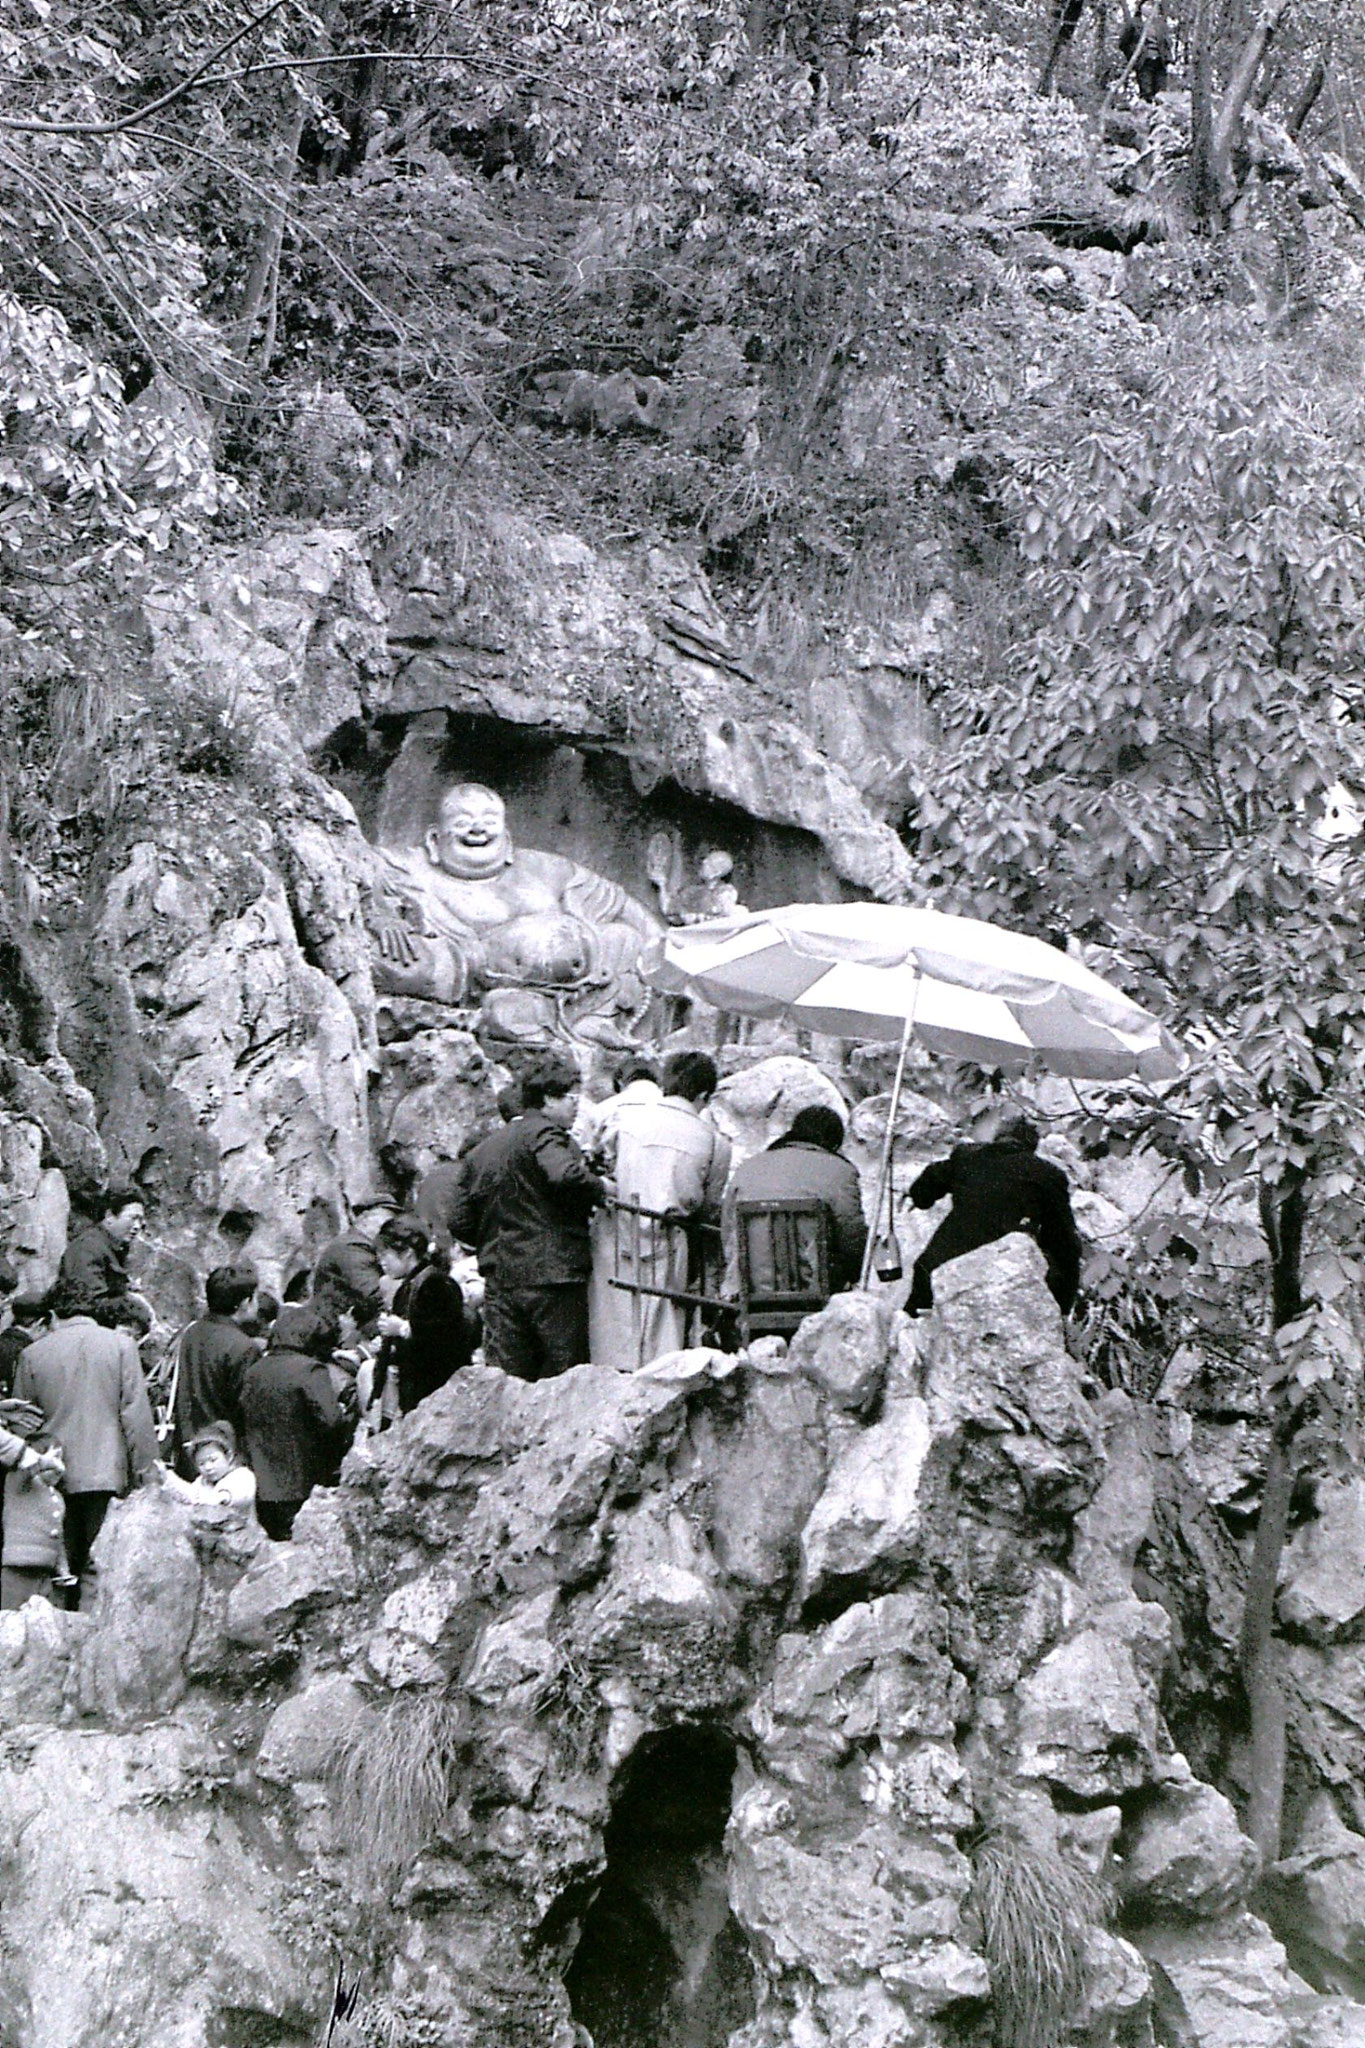 25/3/1989: 31: Hangzhou Laughing Buddha on cliff